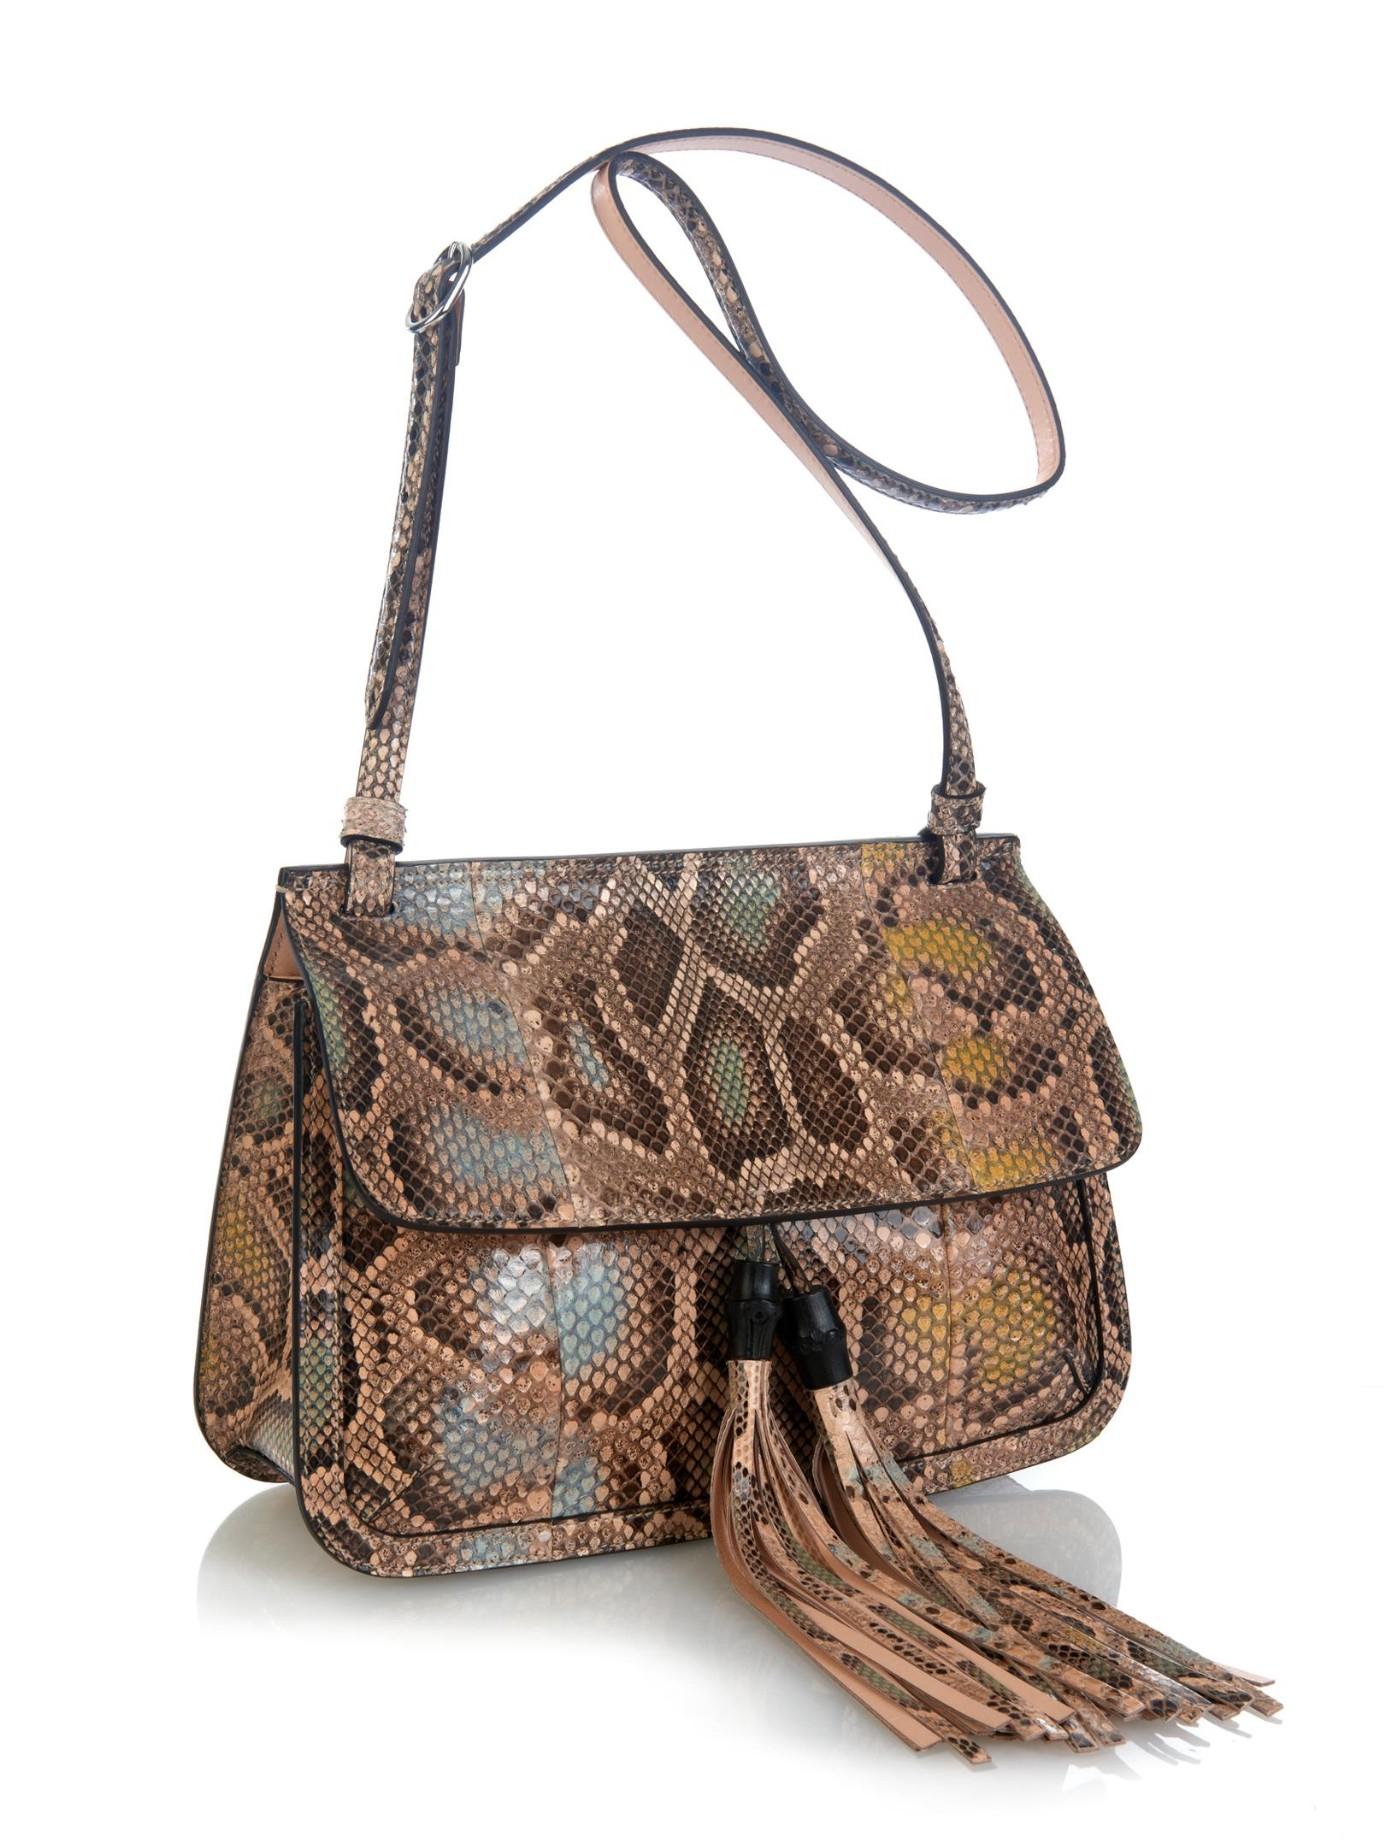 d7d3d2fa26d9 Gucci Bamboo Daily Python Cross-body Bag in Natural - Lyst